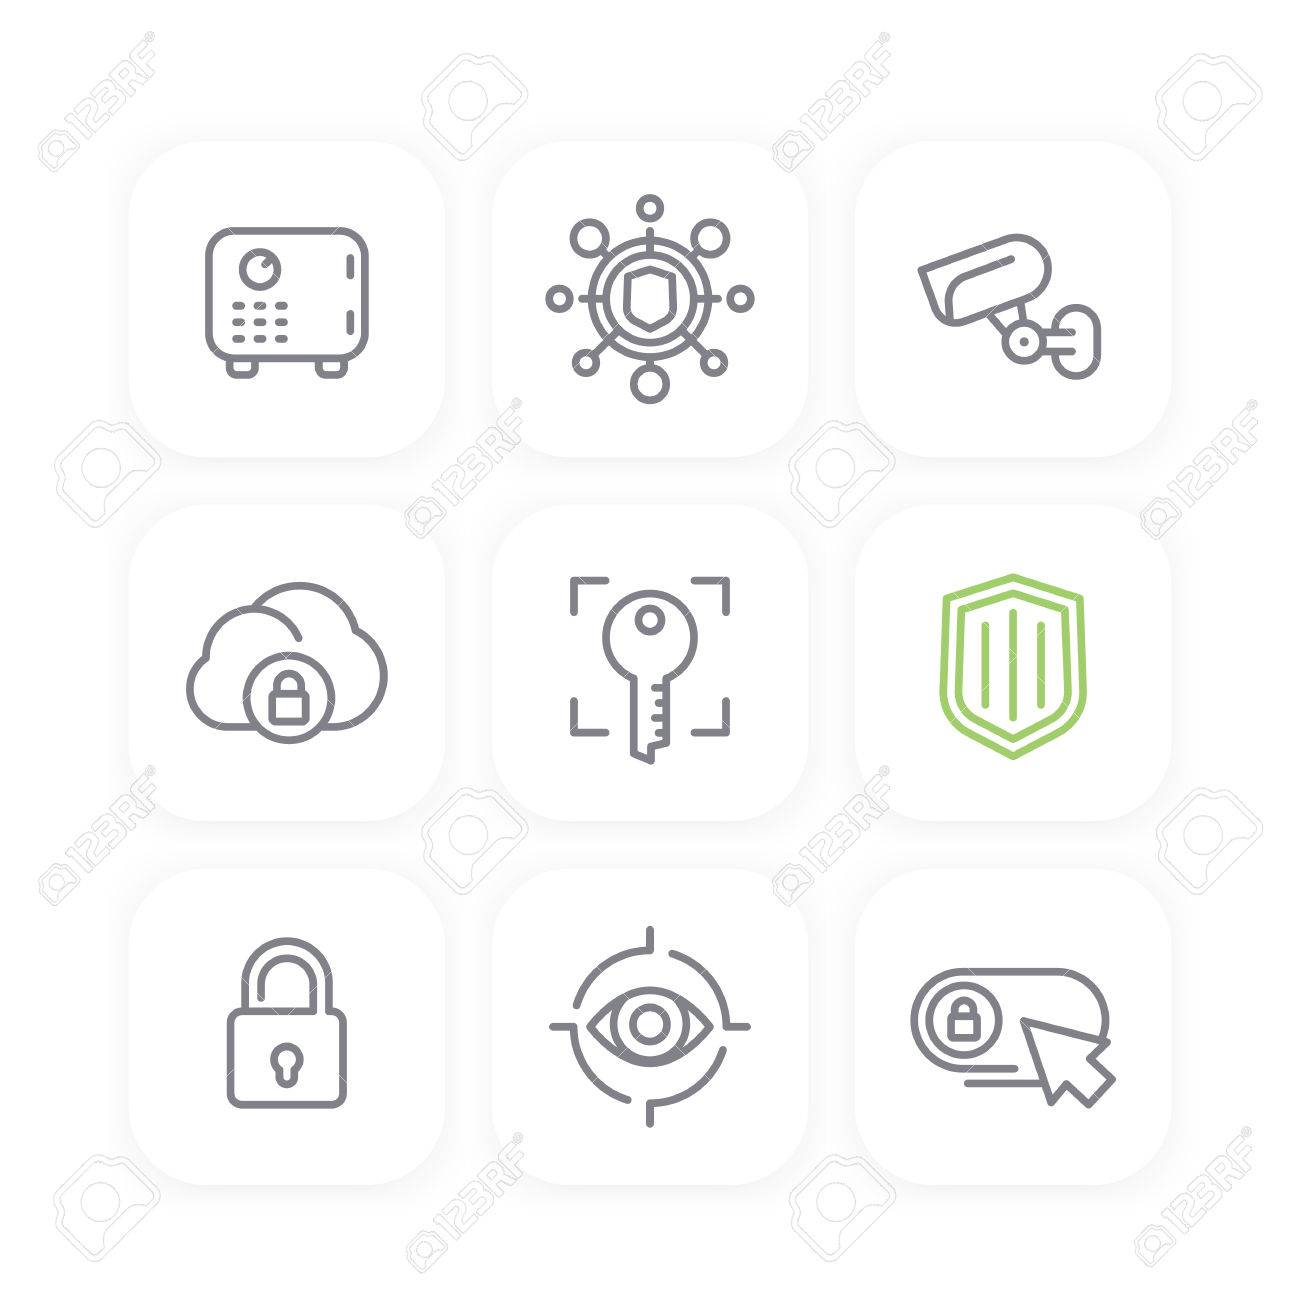 Security line icons set, secure cloud, key, lock, shield, strongbox,